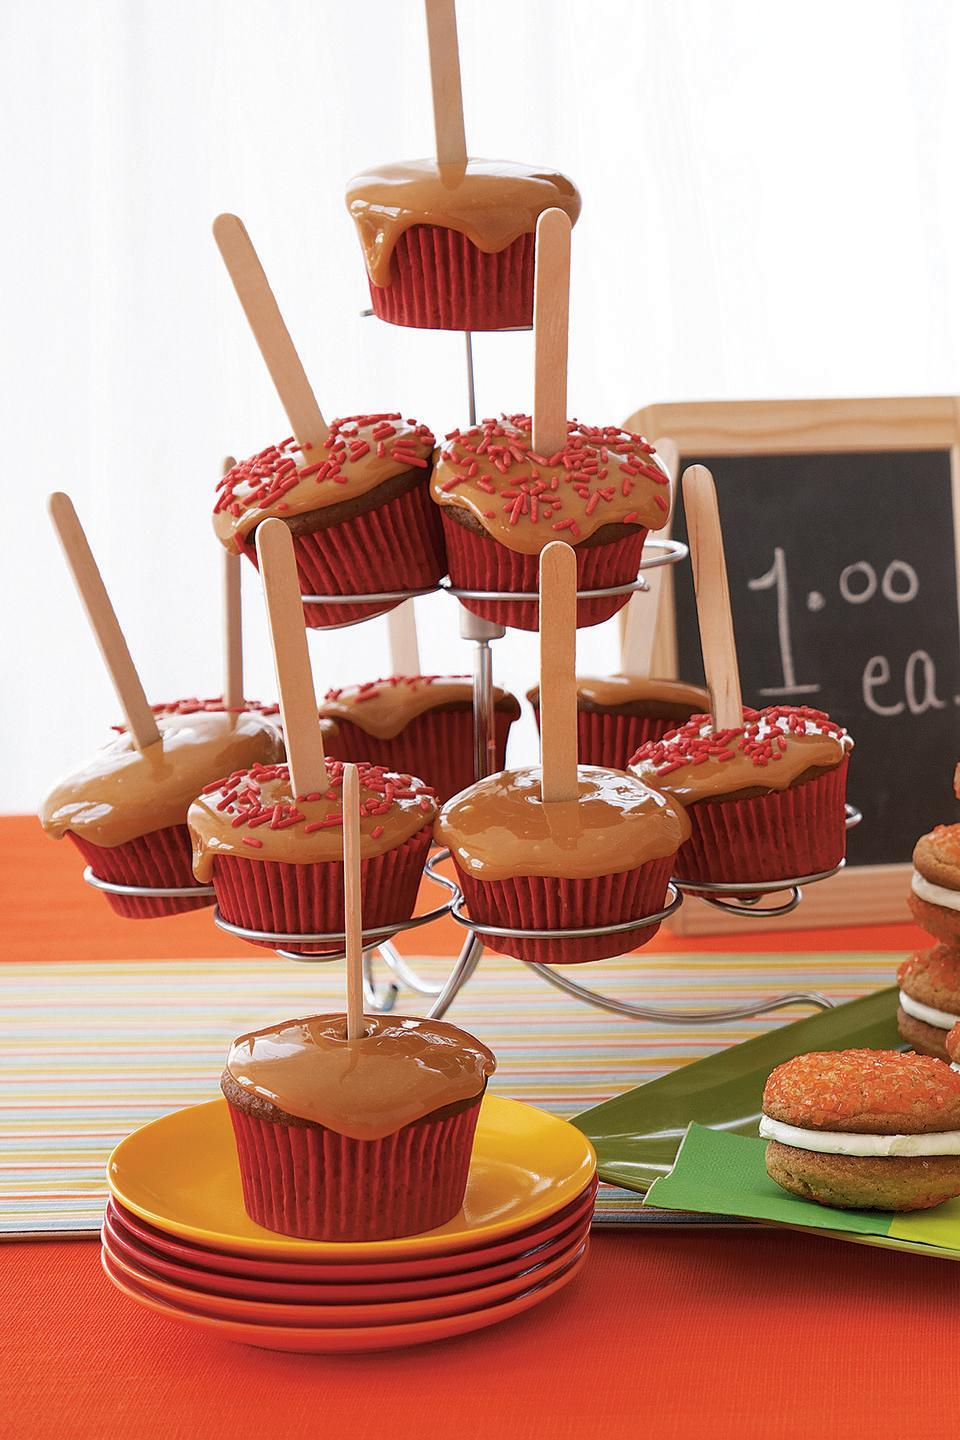 """<p>As if caramel apples could get any better. These cupcakes are super moist and will satisfy those who have the ultimate sweet tooth.</p><p><em><a href=""""https://www.womansday.com/food-recipes/food-drinks/recipes/a10744/candy-apple-cupcakes-122126/"""" rel=""""nofollow noopener"""" target=""""_blank"""" data-ylk=""""slk:Get the Candy Apple Cupcakes recipe."""" class=""""link rapid-noclick-resp"""">Get the Candy Apple Cupcakes recipe. </a></em></p>"""